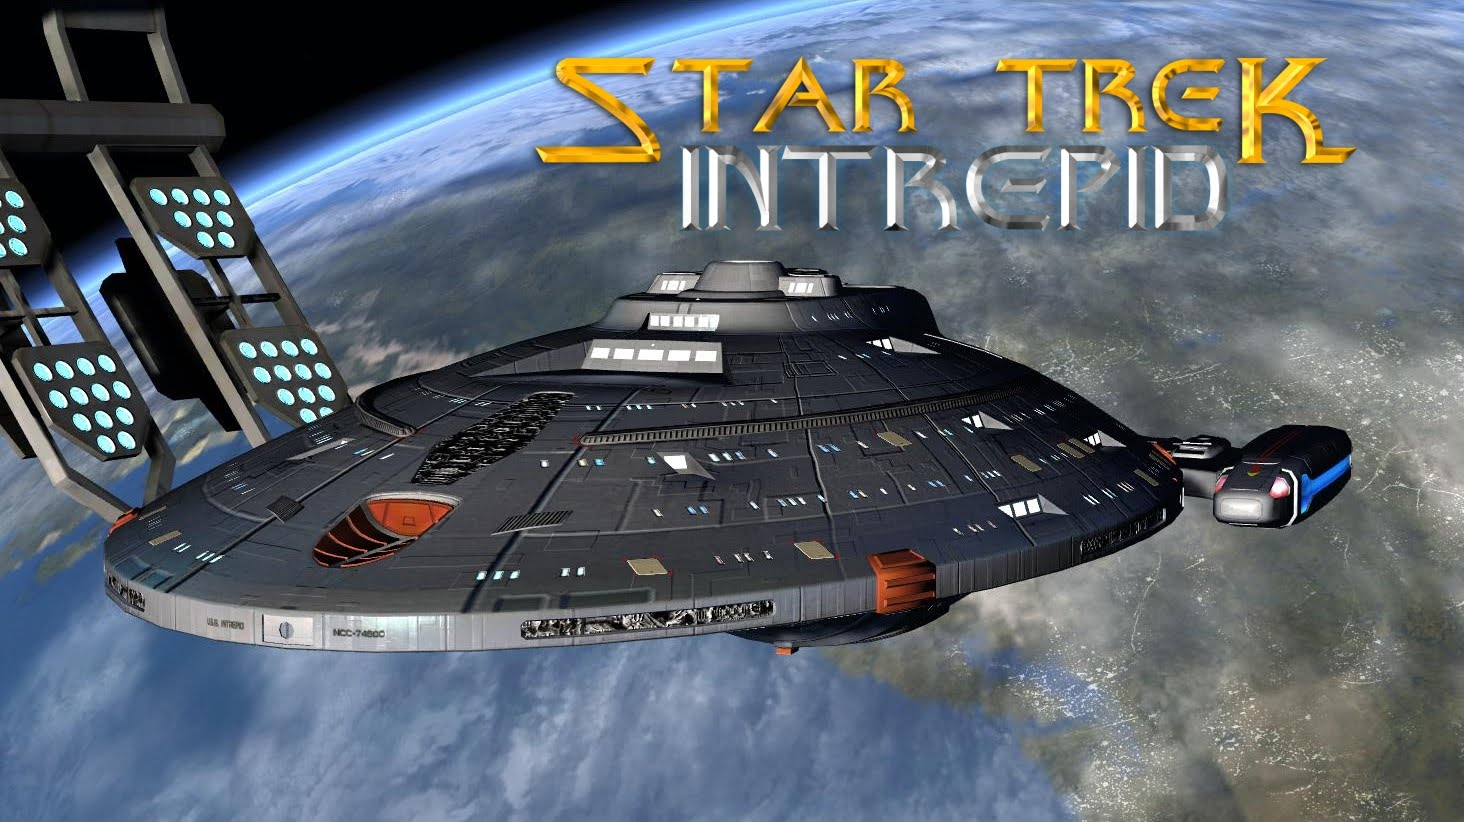 Star Trek - Intrepid - Schiff Teaser Trailer [HD]